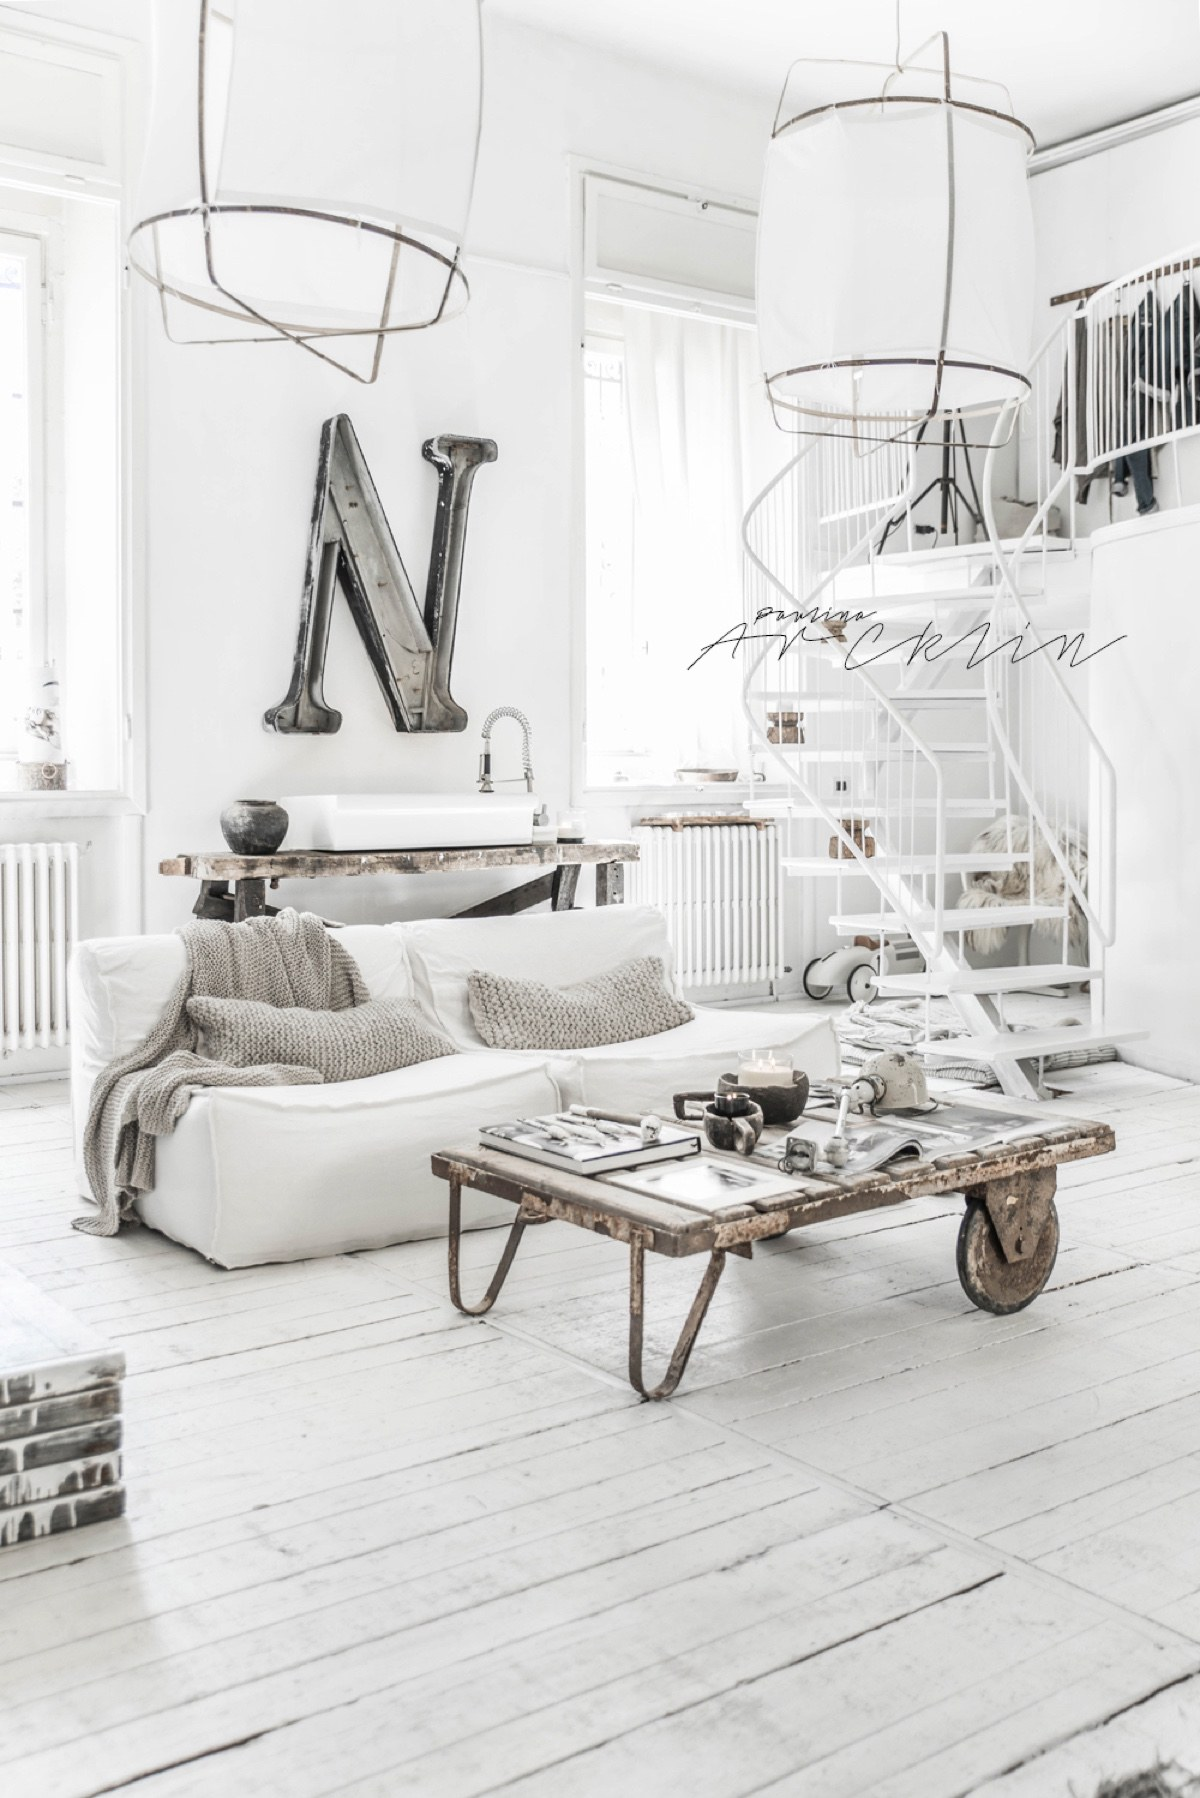 Inspiring Apartment In Milan - Cottage chic meets industrial decor in this amazing milan apartment